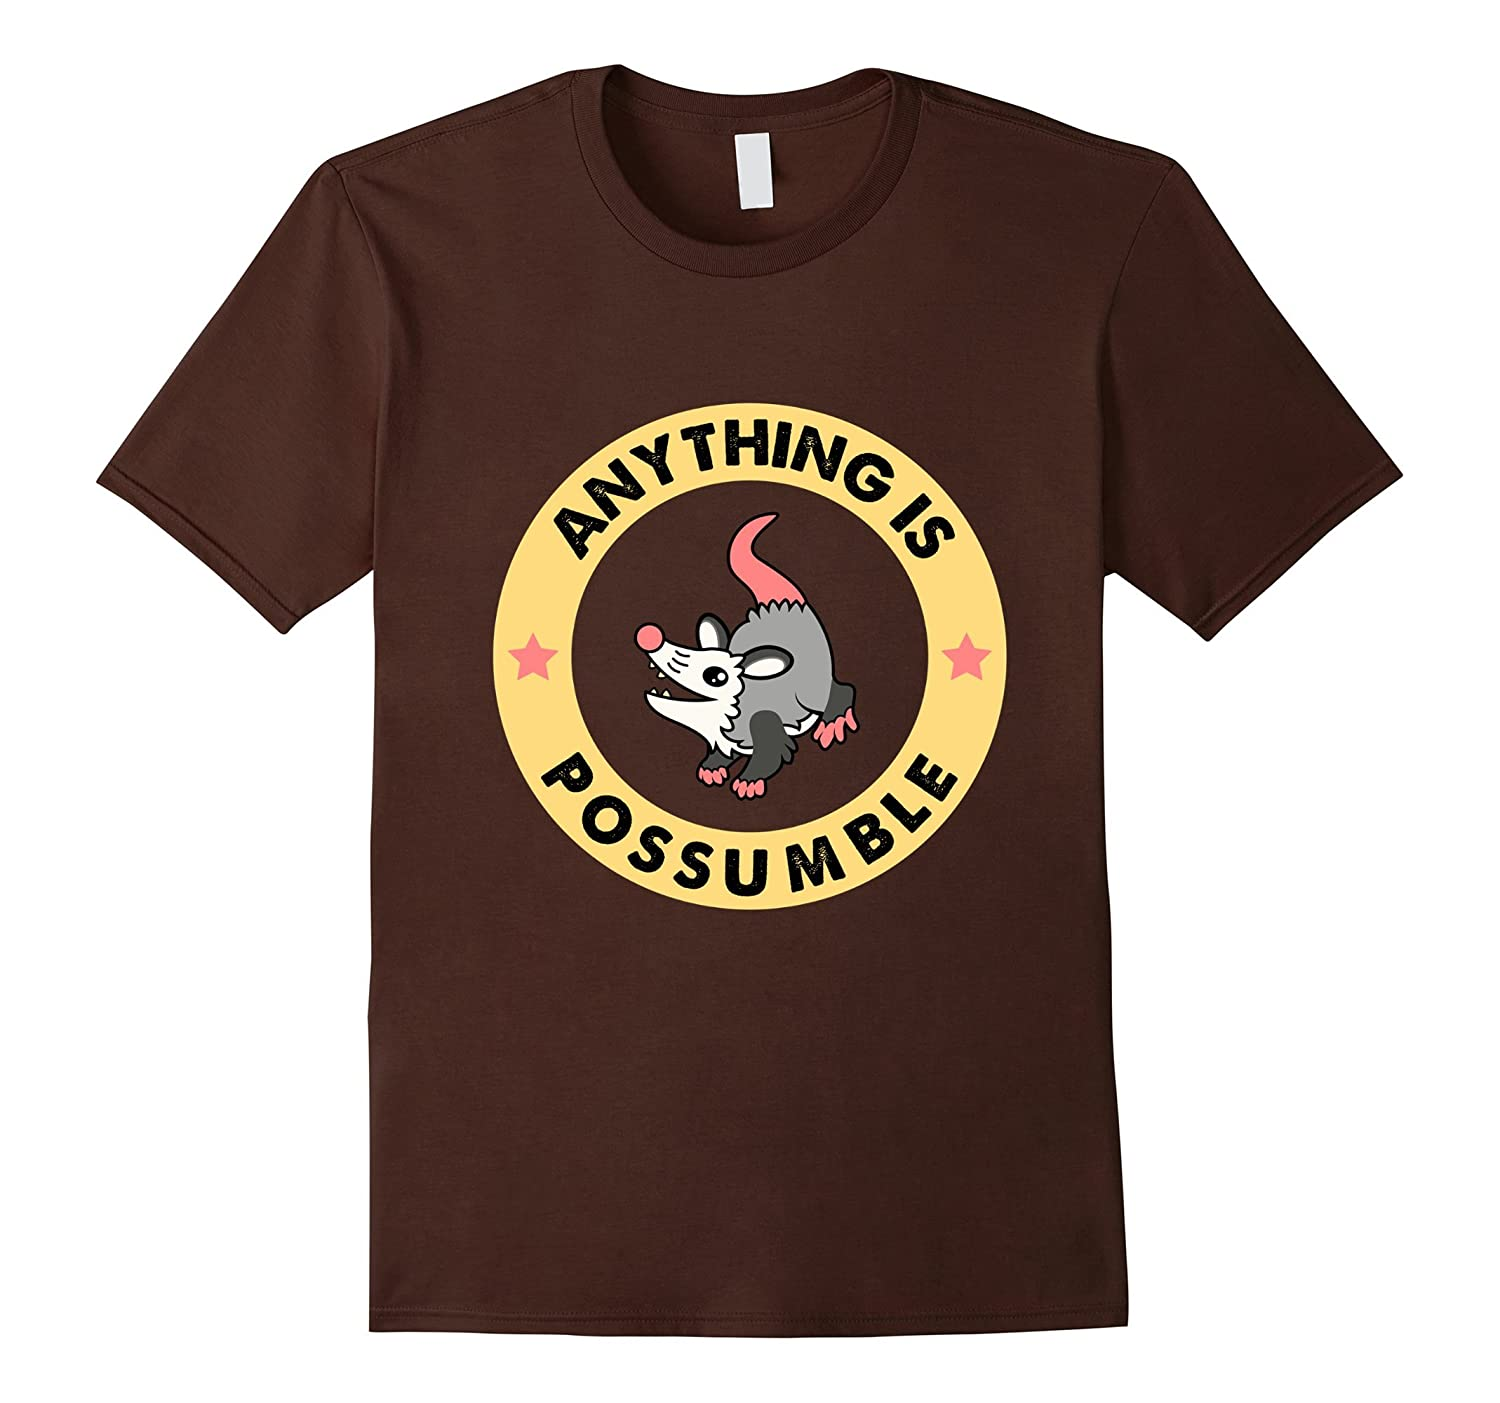 Funny Anything Is Possumble T Shirt Pet Possum Lovers Gift